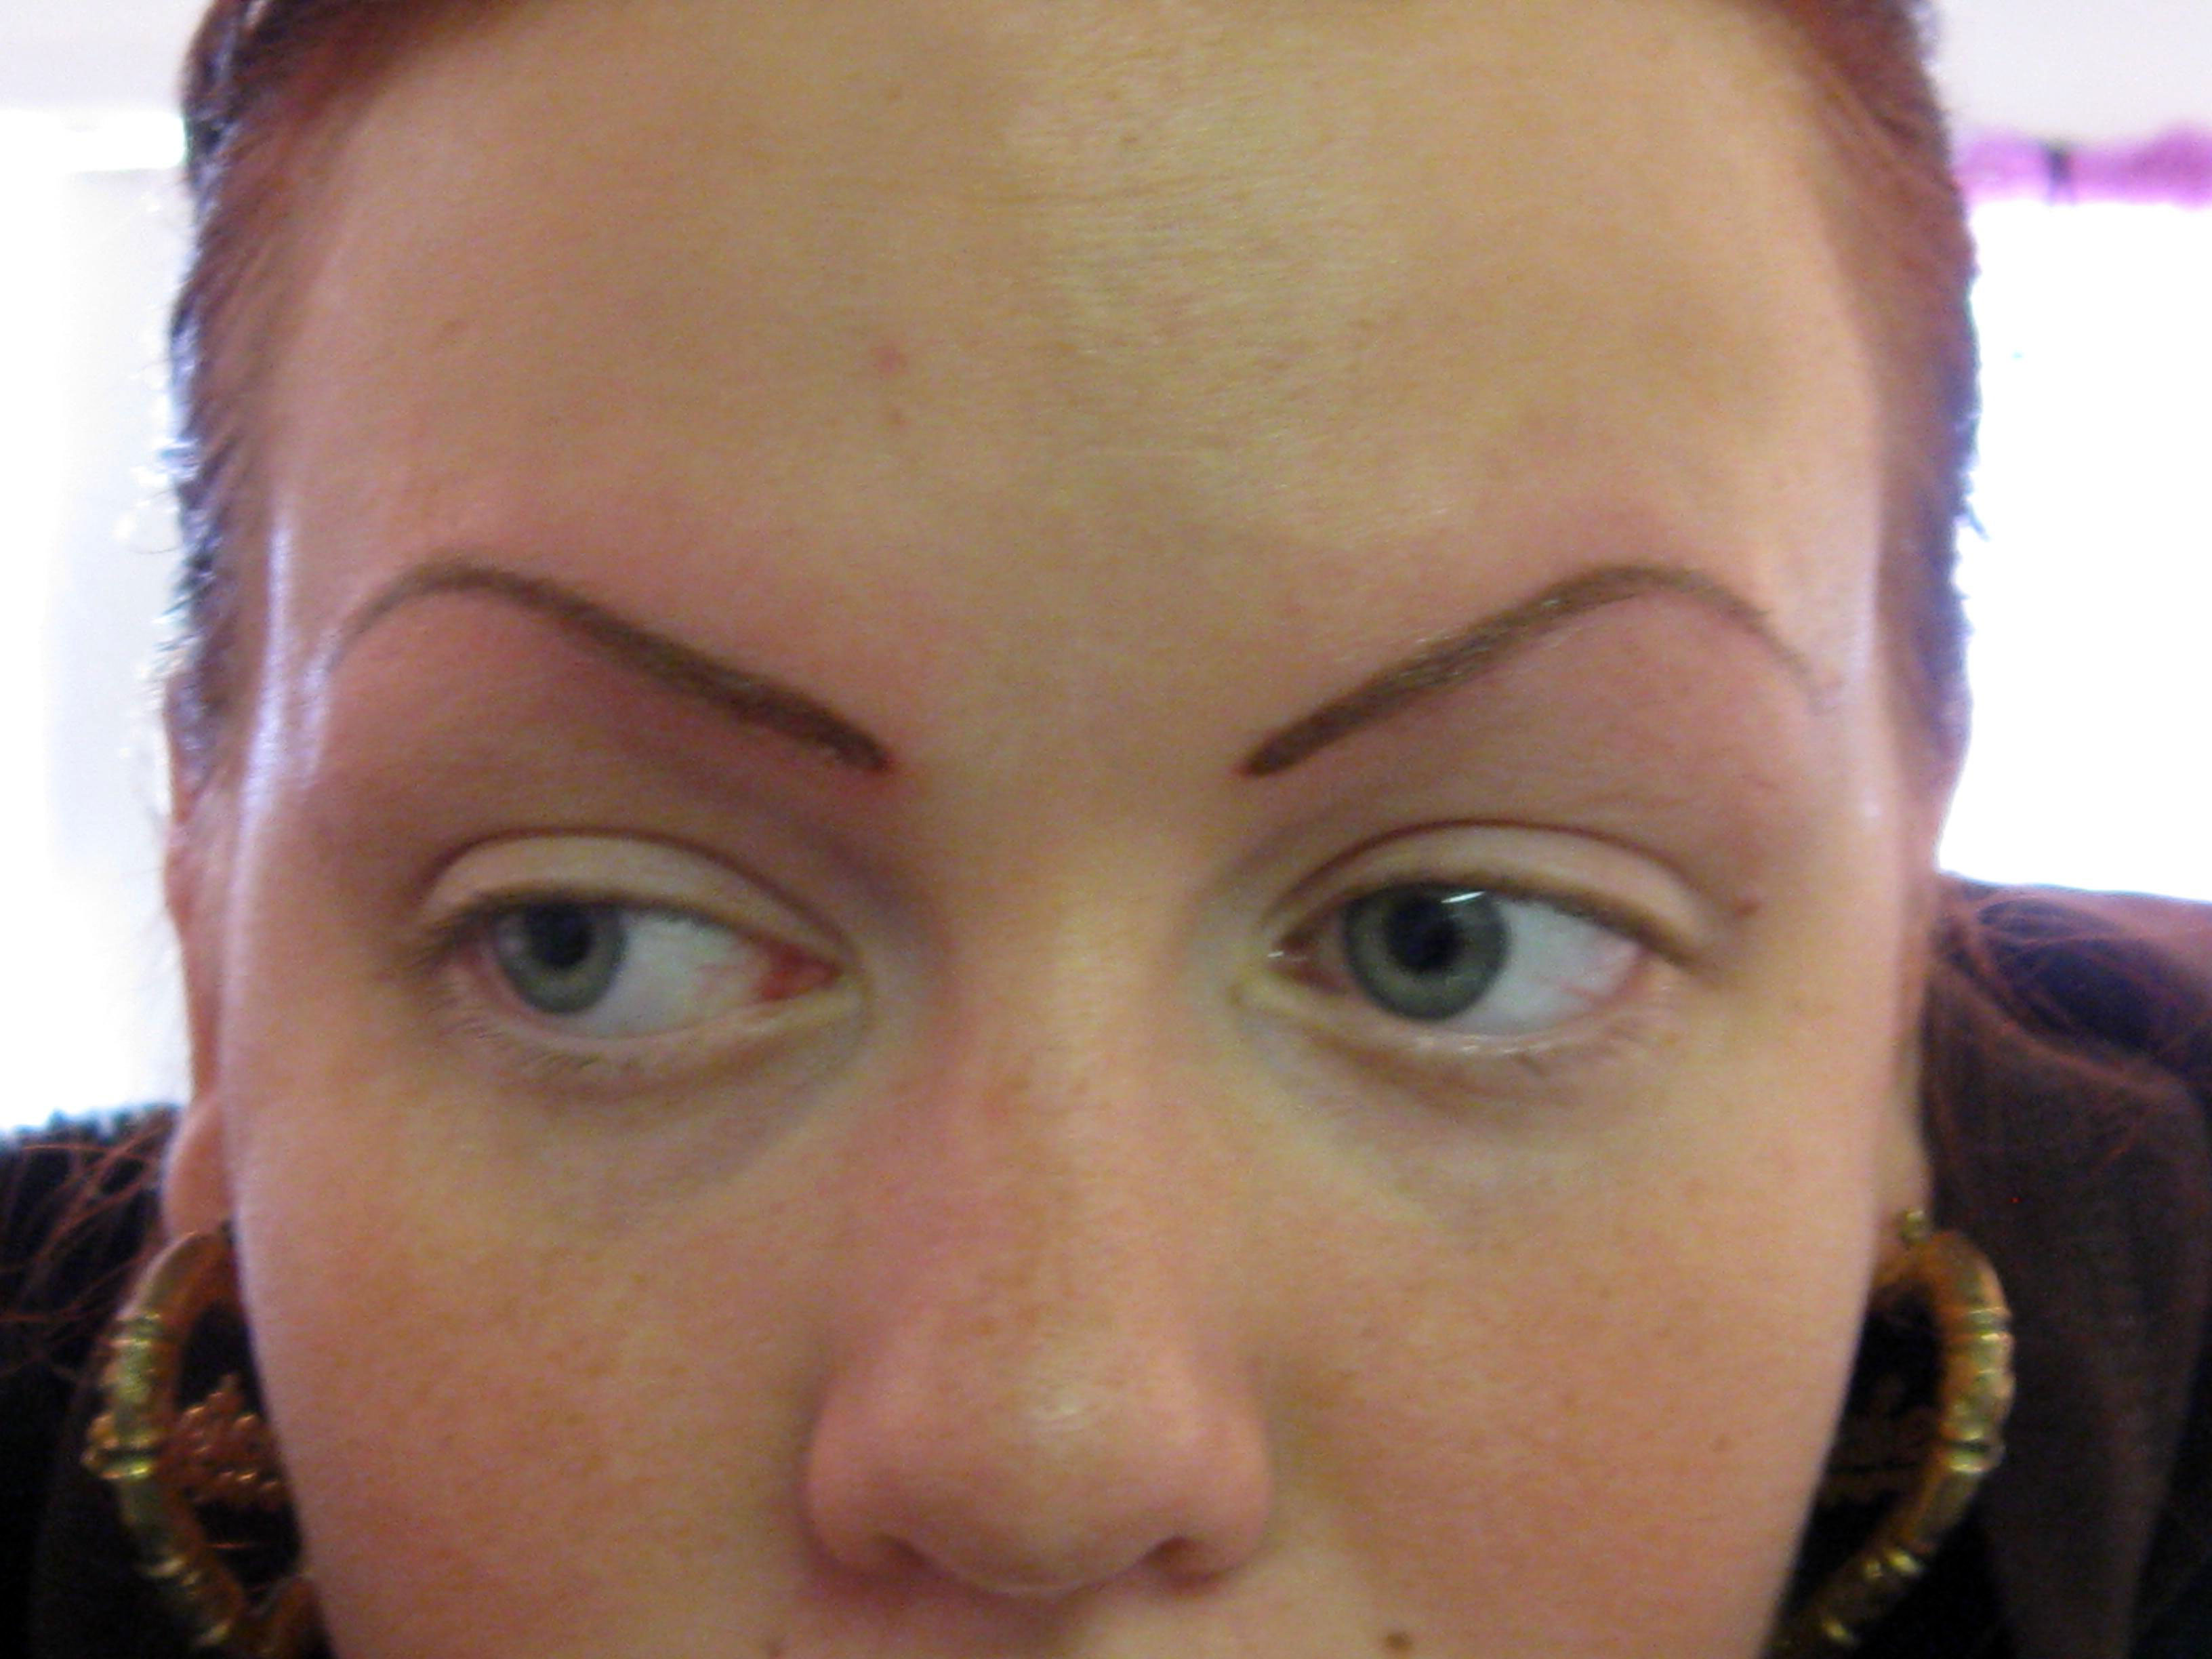 Tattooed Eye Brows